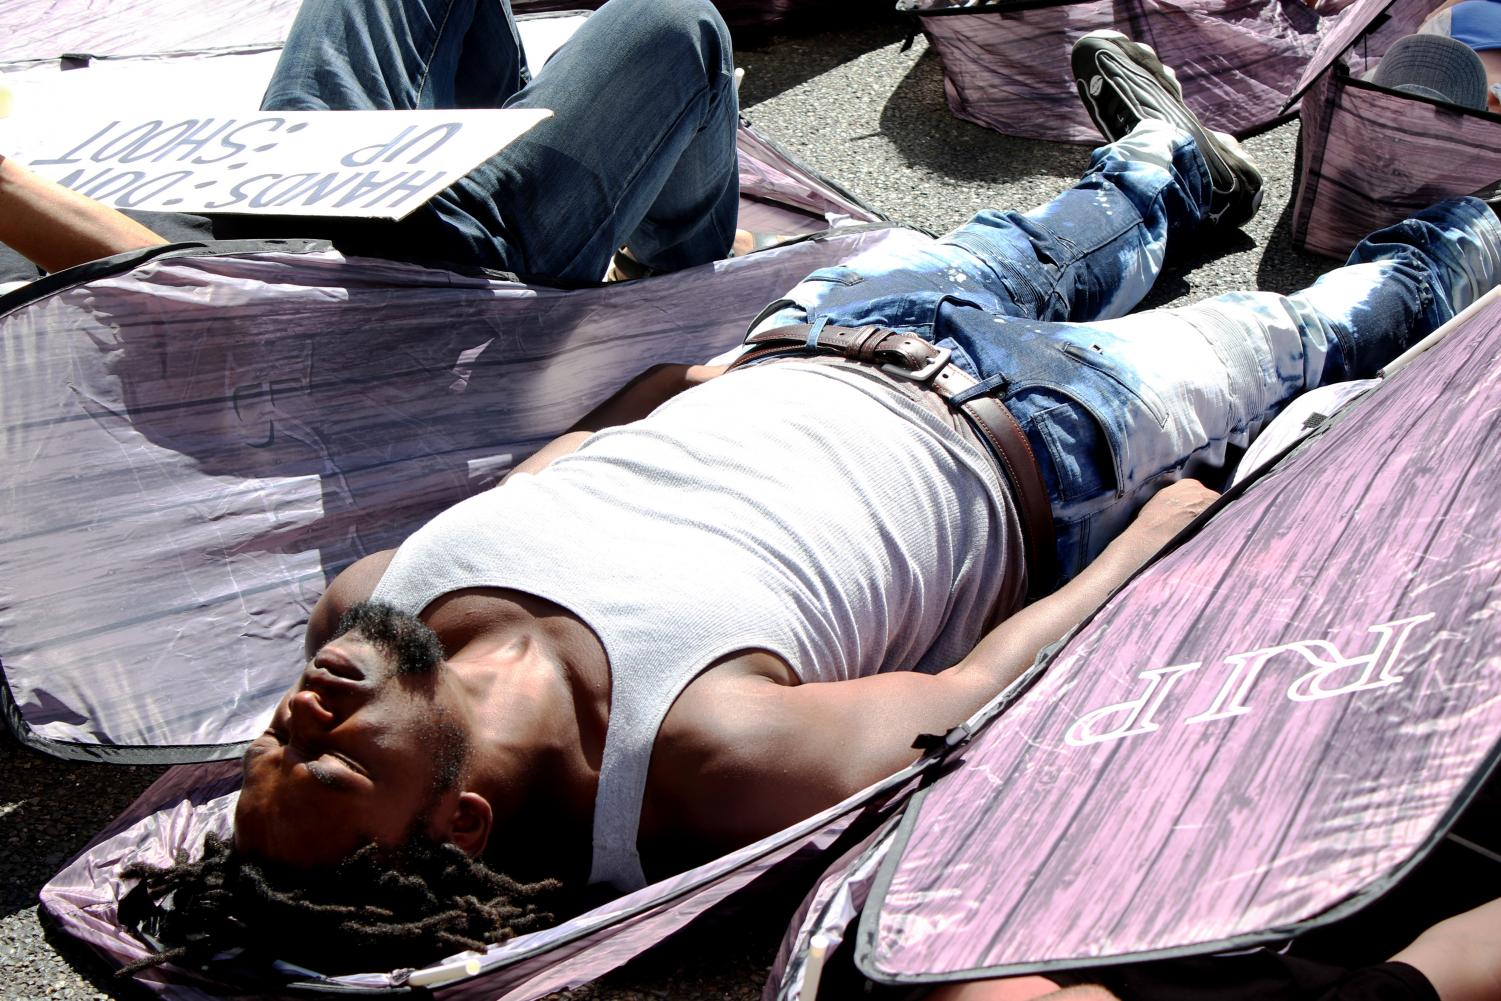 Adam+Braggmartin+lays+down+in+a+coffin+during+the+%27die+in%27+that+happened+at+the+protest+held+on+Tuesday%2C+Sept.+18.+The+protest+was+held+in+response+to+law+enforcement+tactics.